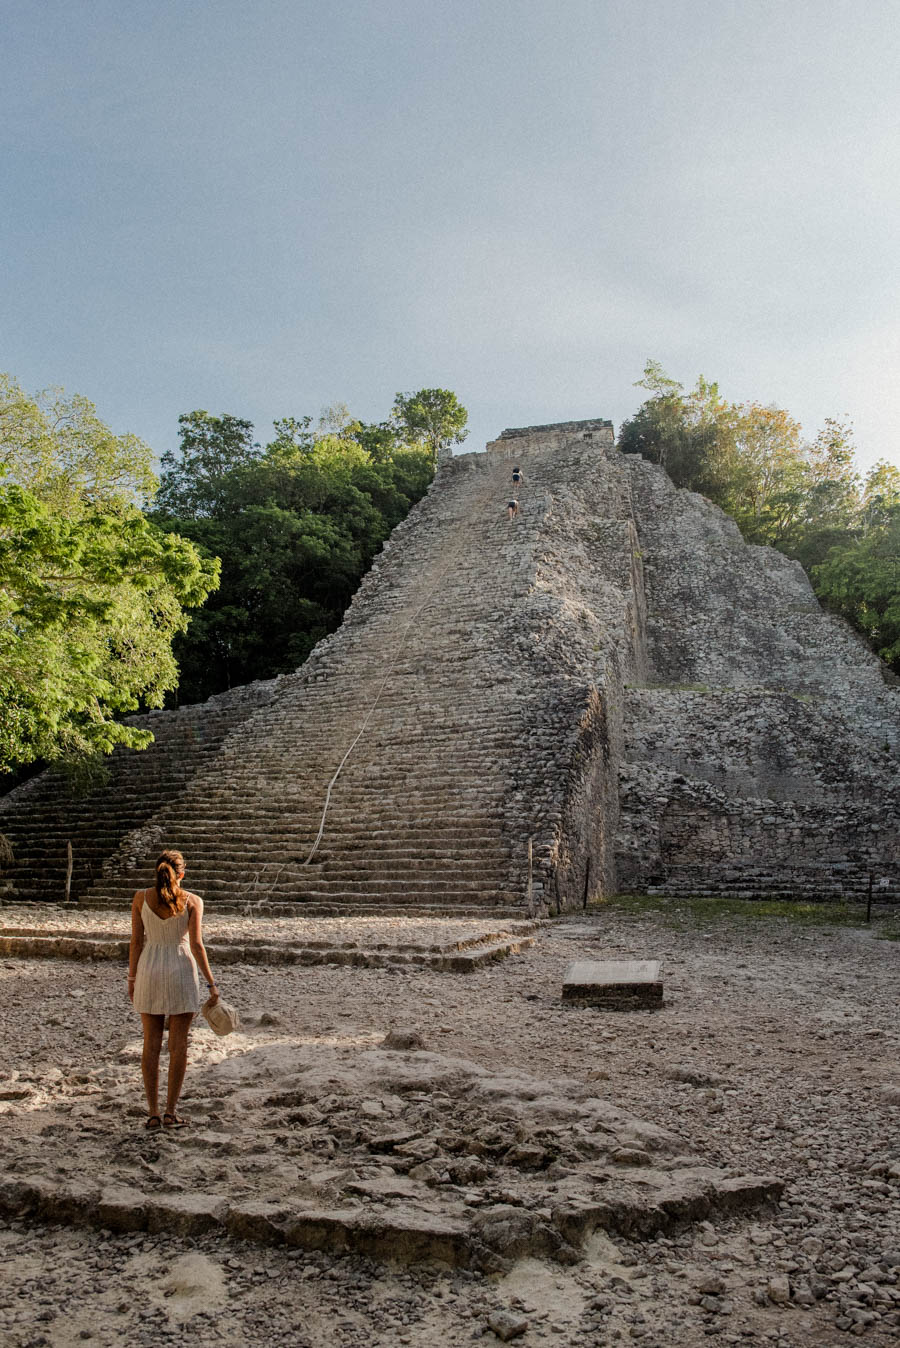 Coba is one of the best Mayan ruins to visit in Mexico. Climb the largest pyramid and visit the remaining temples and buildings.